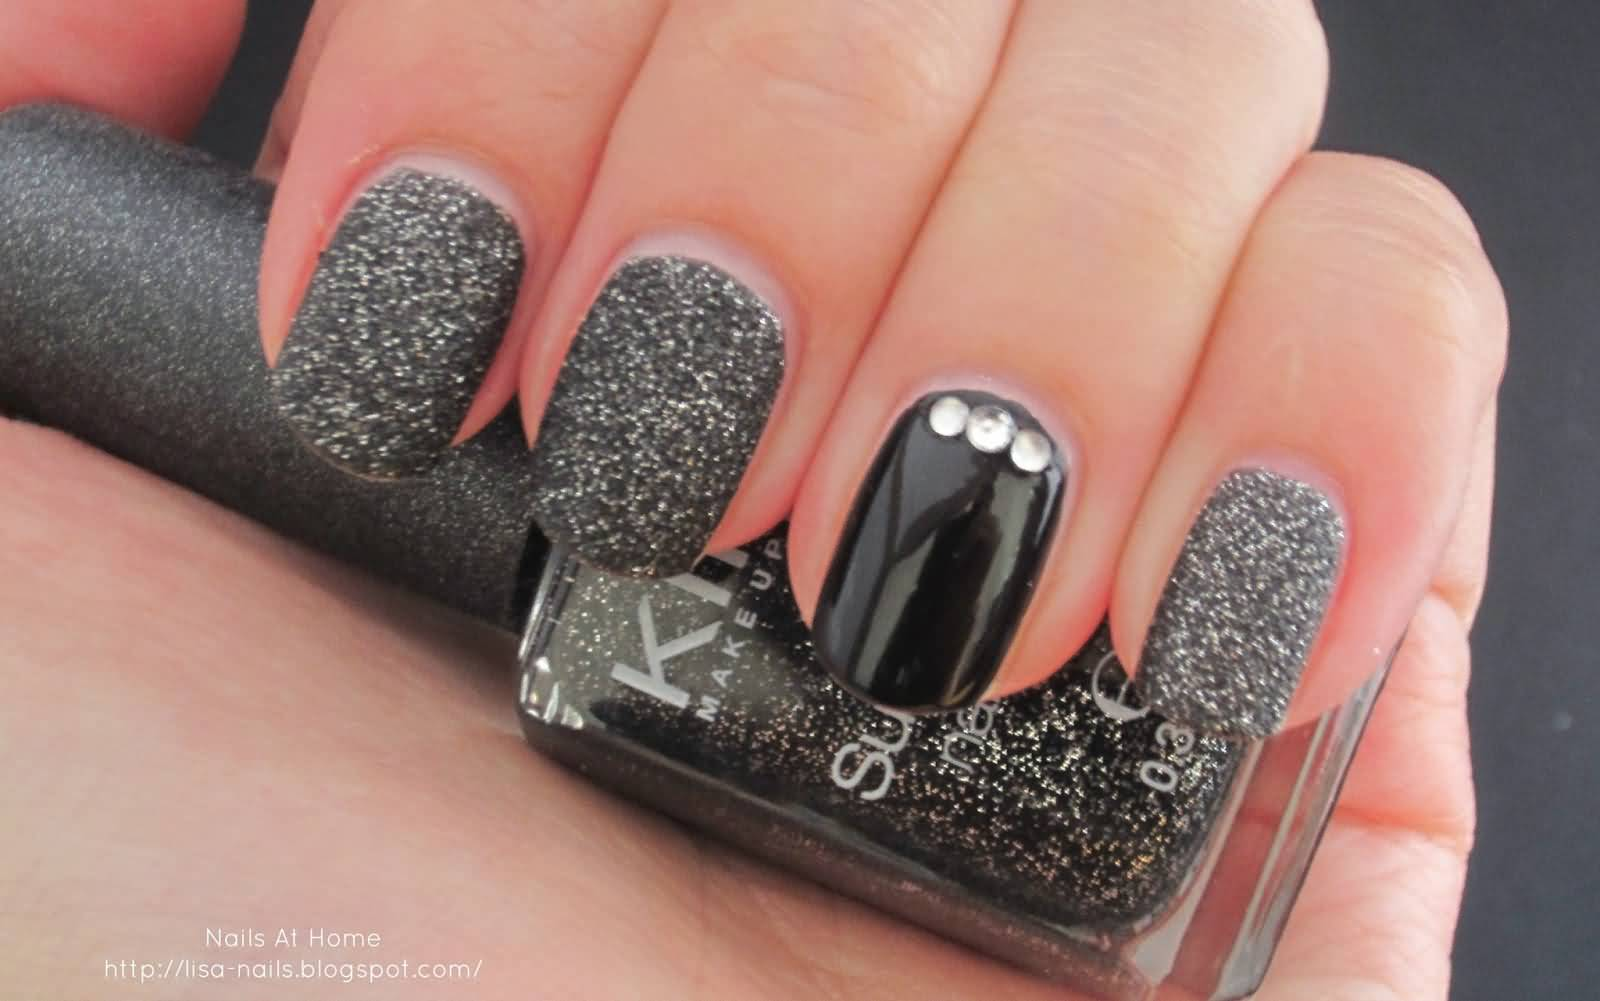 Glossy black nails with stones accent nail art picsmine glossy black nails with stones accent nail art prinsesfo Image collections